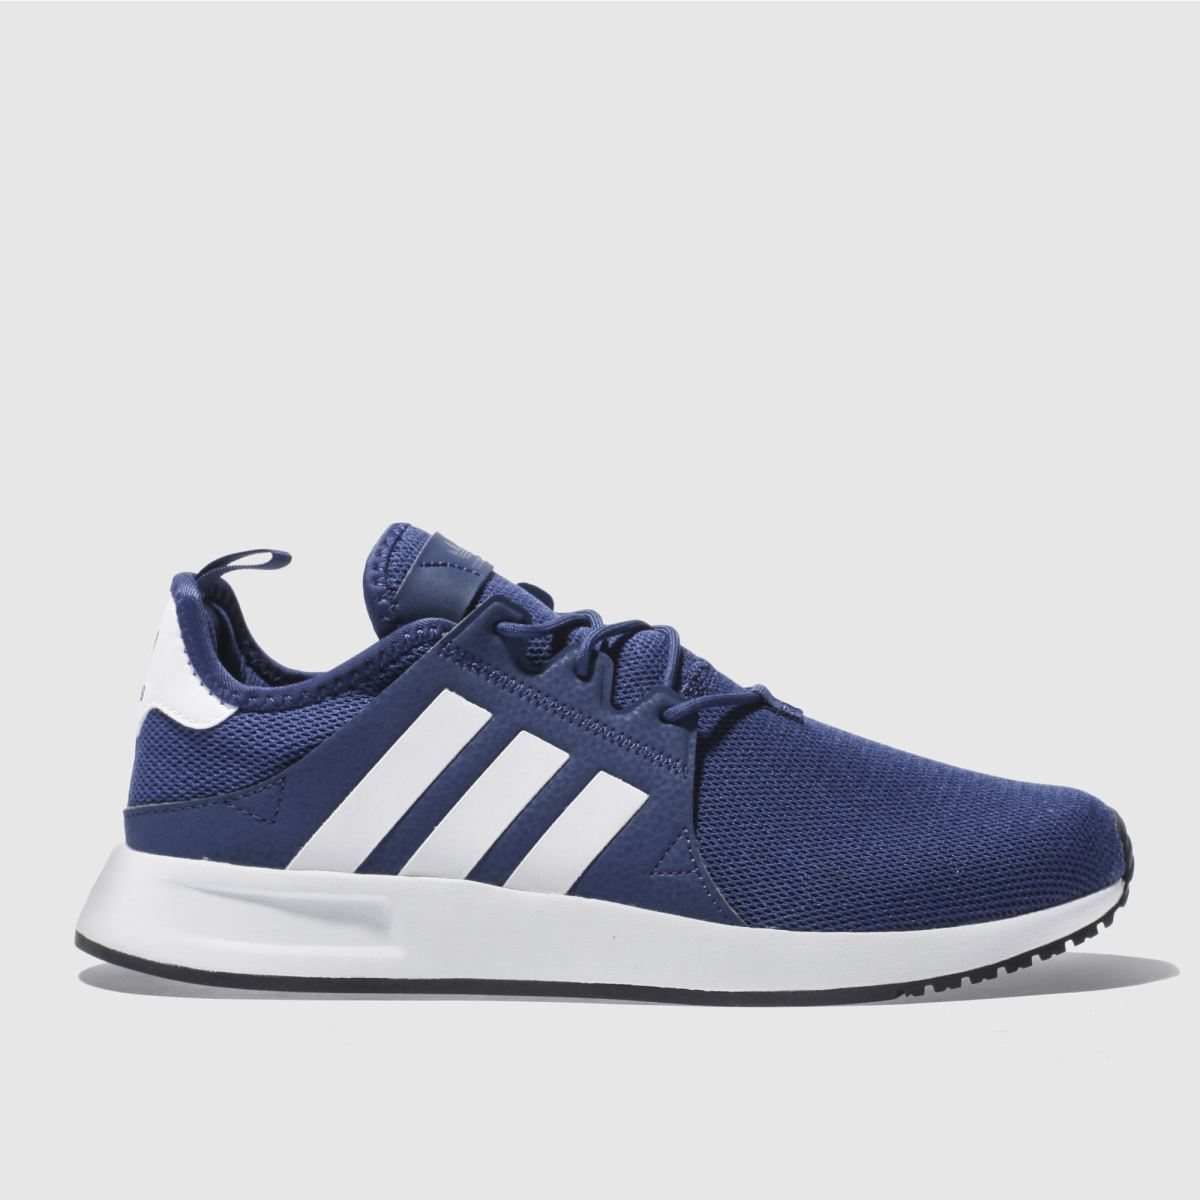 Adidas Navy X_plr Trainers